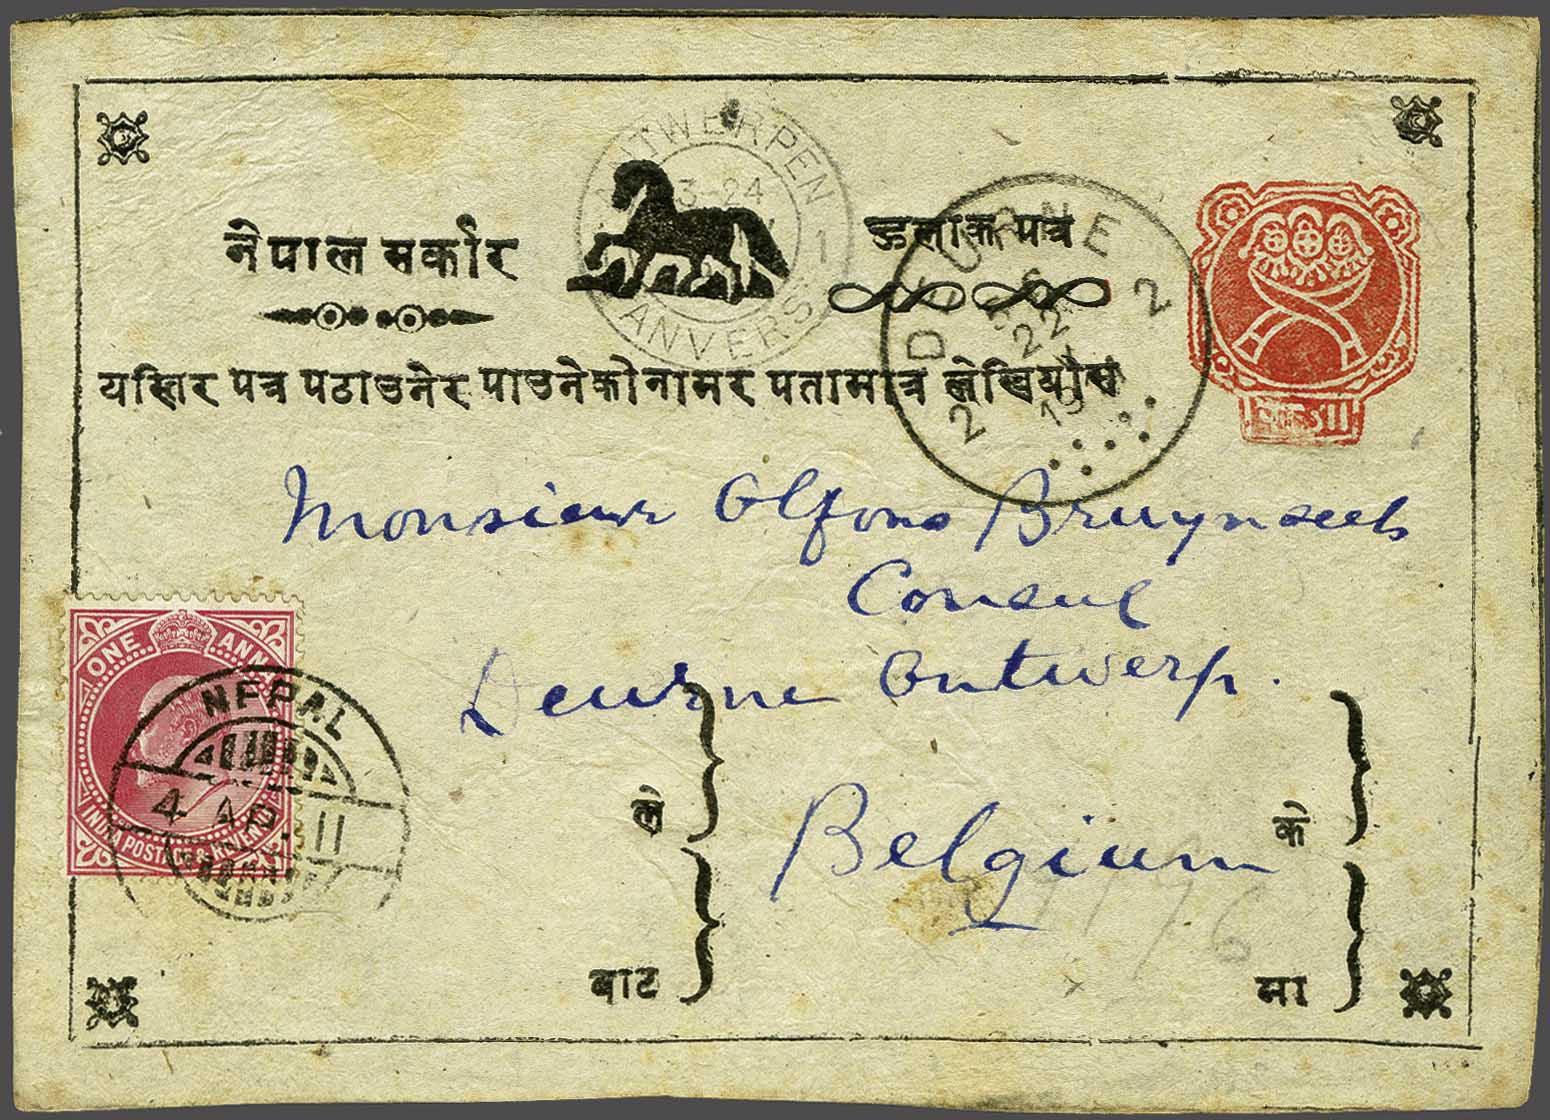 Lot 9 - Great Britain and former colonies Nepal -  Corinphila Veilingen Auction 245-246 Day 1 - Nepal - The Dick van der Wateren Collection, Foreign countries - Single lots, Picture postcards